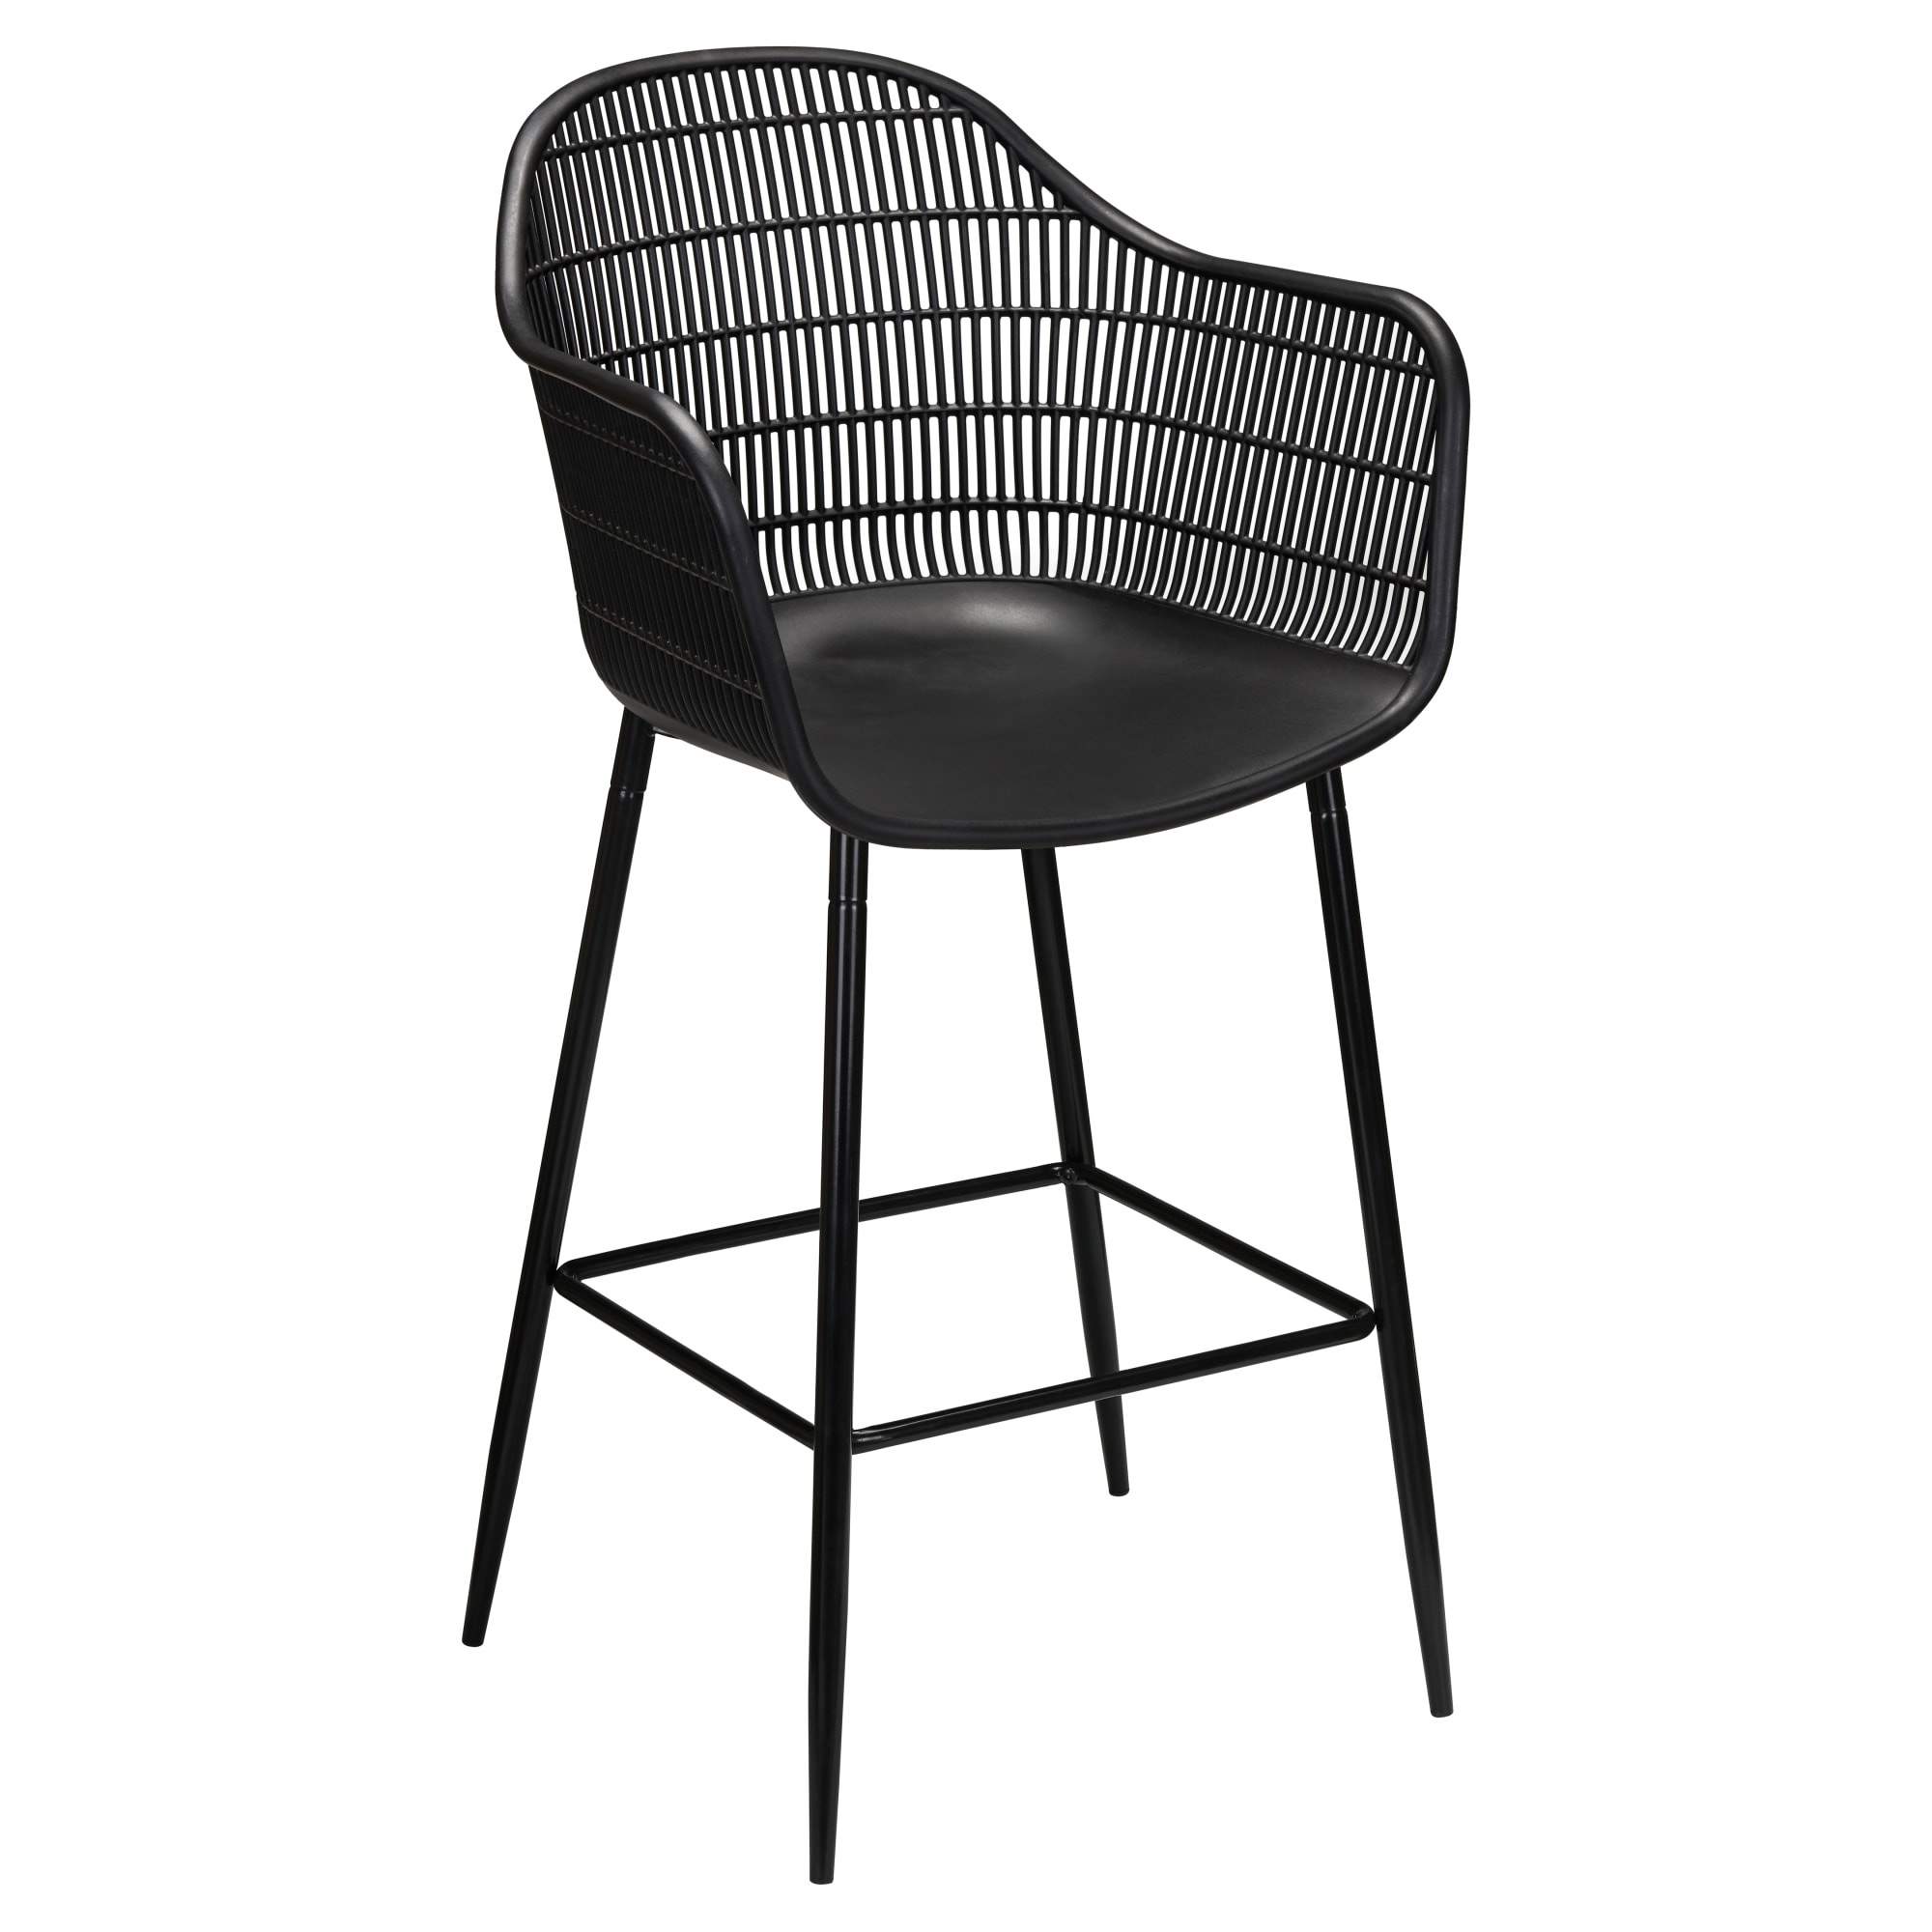 Alice Outdoor Resin Bar Stool with Alice Outdoor Resin Bar Stool